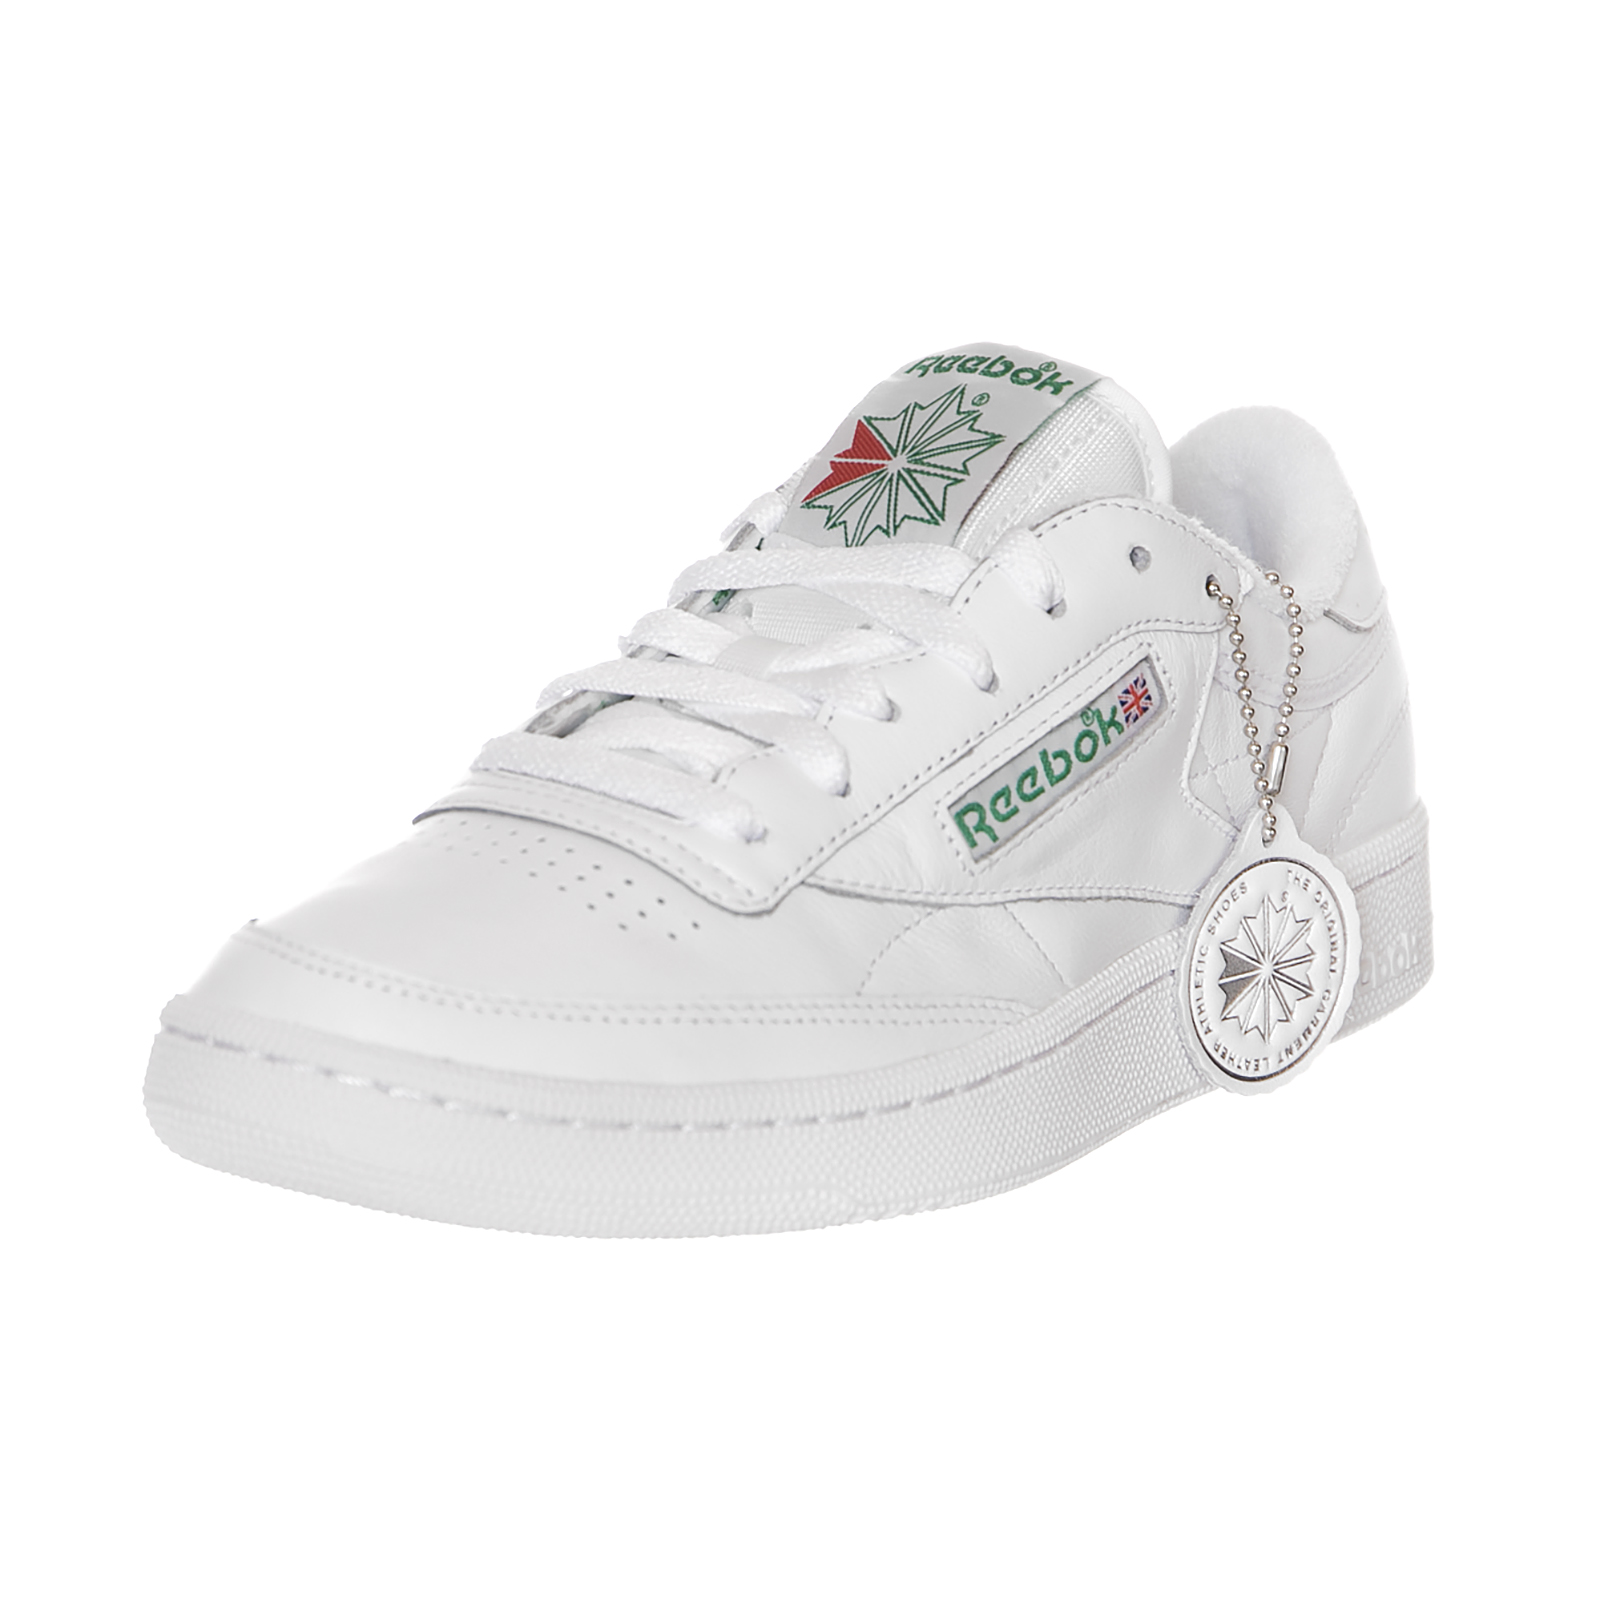 Reebok Sneakers Club C 85 Archive White / Green / Red Bianco